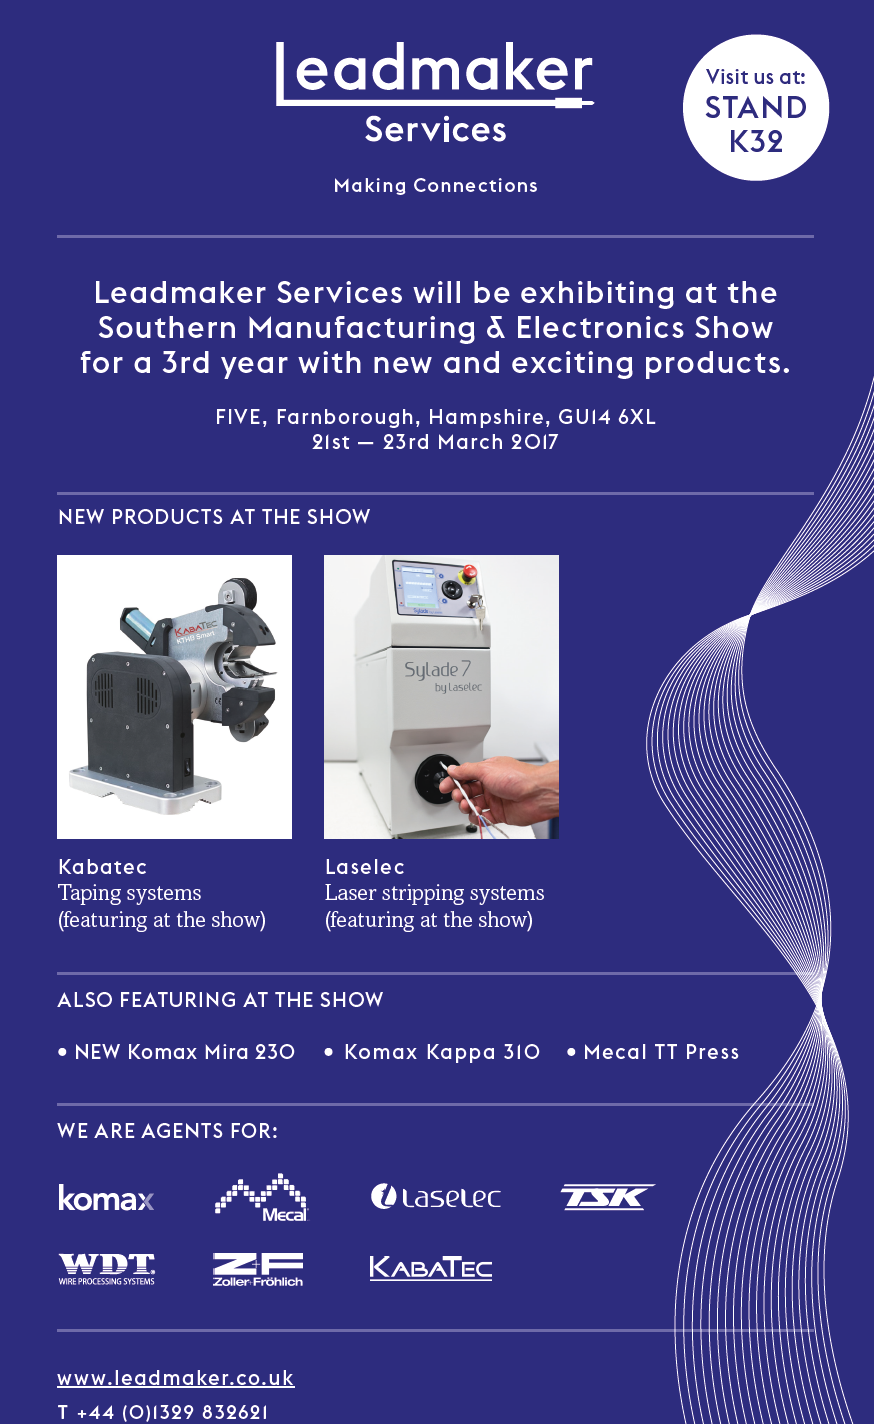 leadmaker-southern-manufacturing-electronics-show